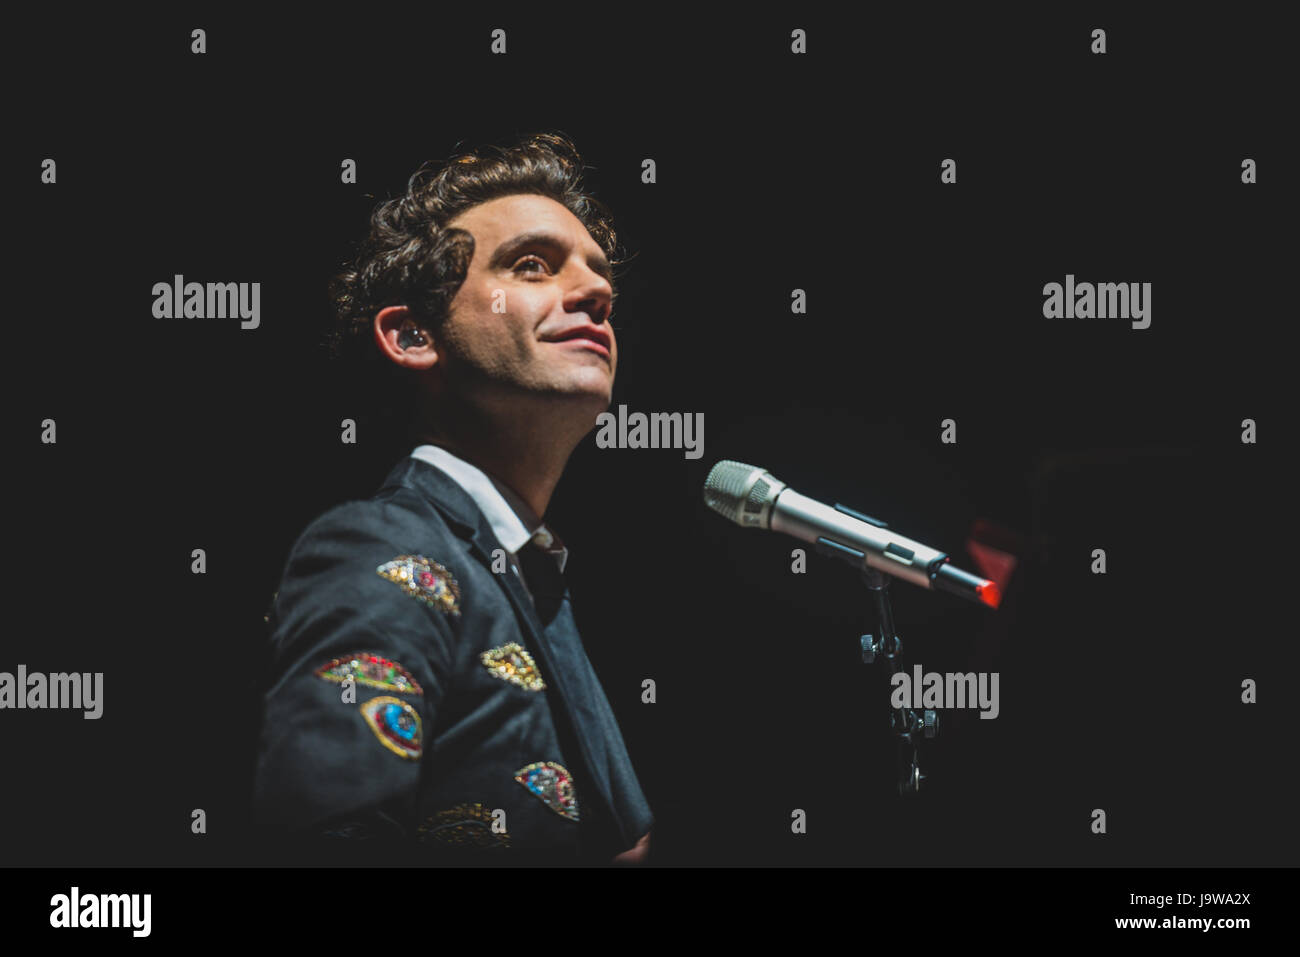 July 17, 2016: Mika performing live on stage at the Collisioni Festival in Barolo for his summer tour 2016 Photo: - Stock Image